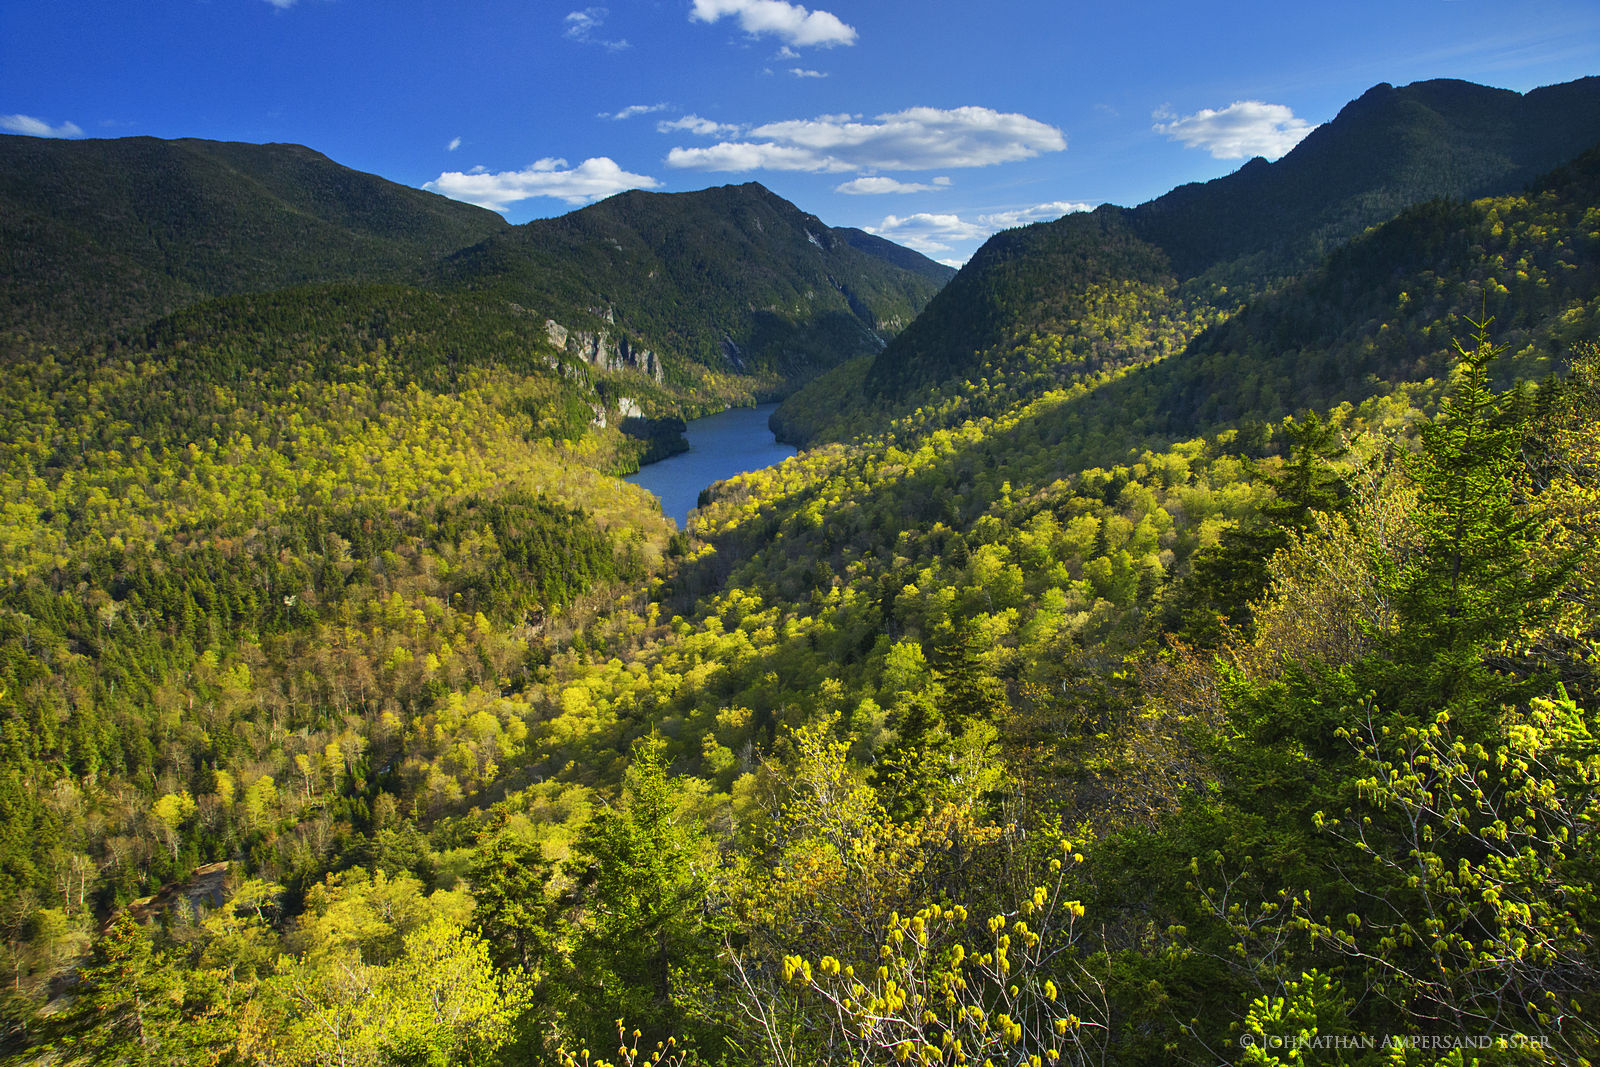 Ausable Valley,Lost Lookout,Ausable Club,Lower Ausable Lake,Ausable Lake,Colvin Mt,Sawteeth Mt,Colvin,Sawteeth,spring,greenery,